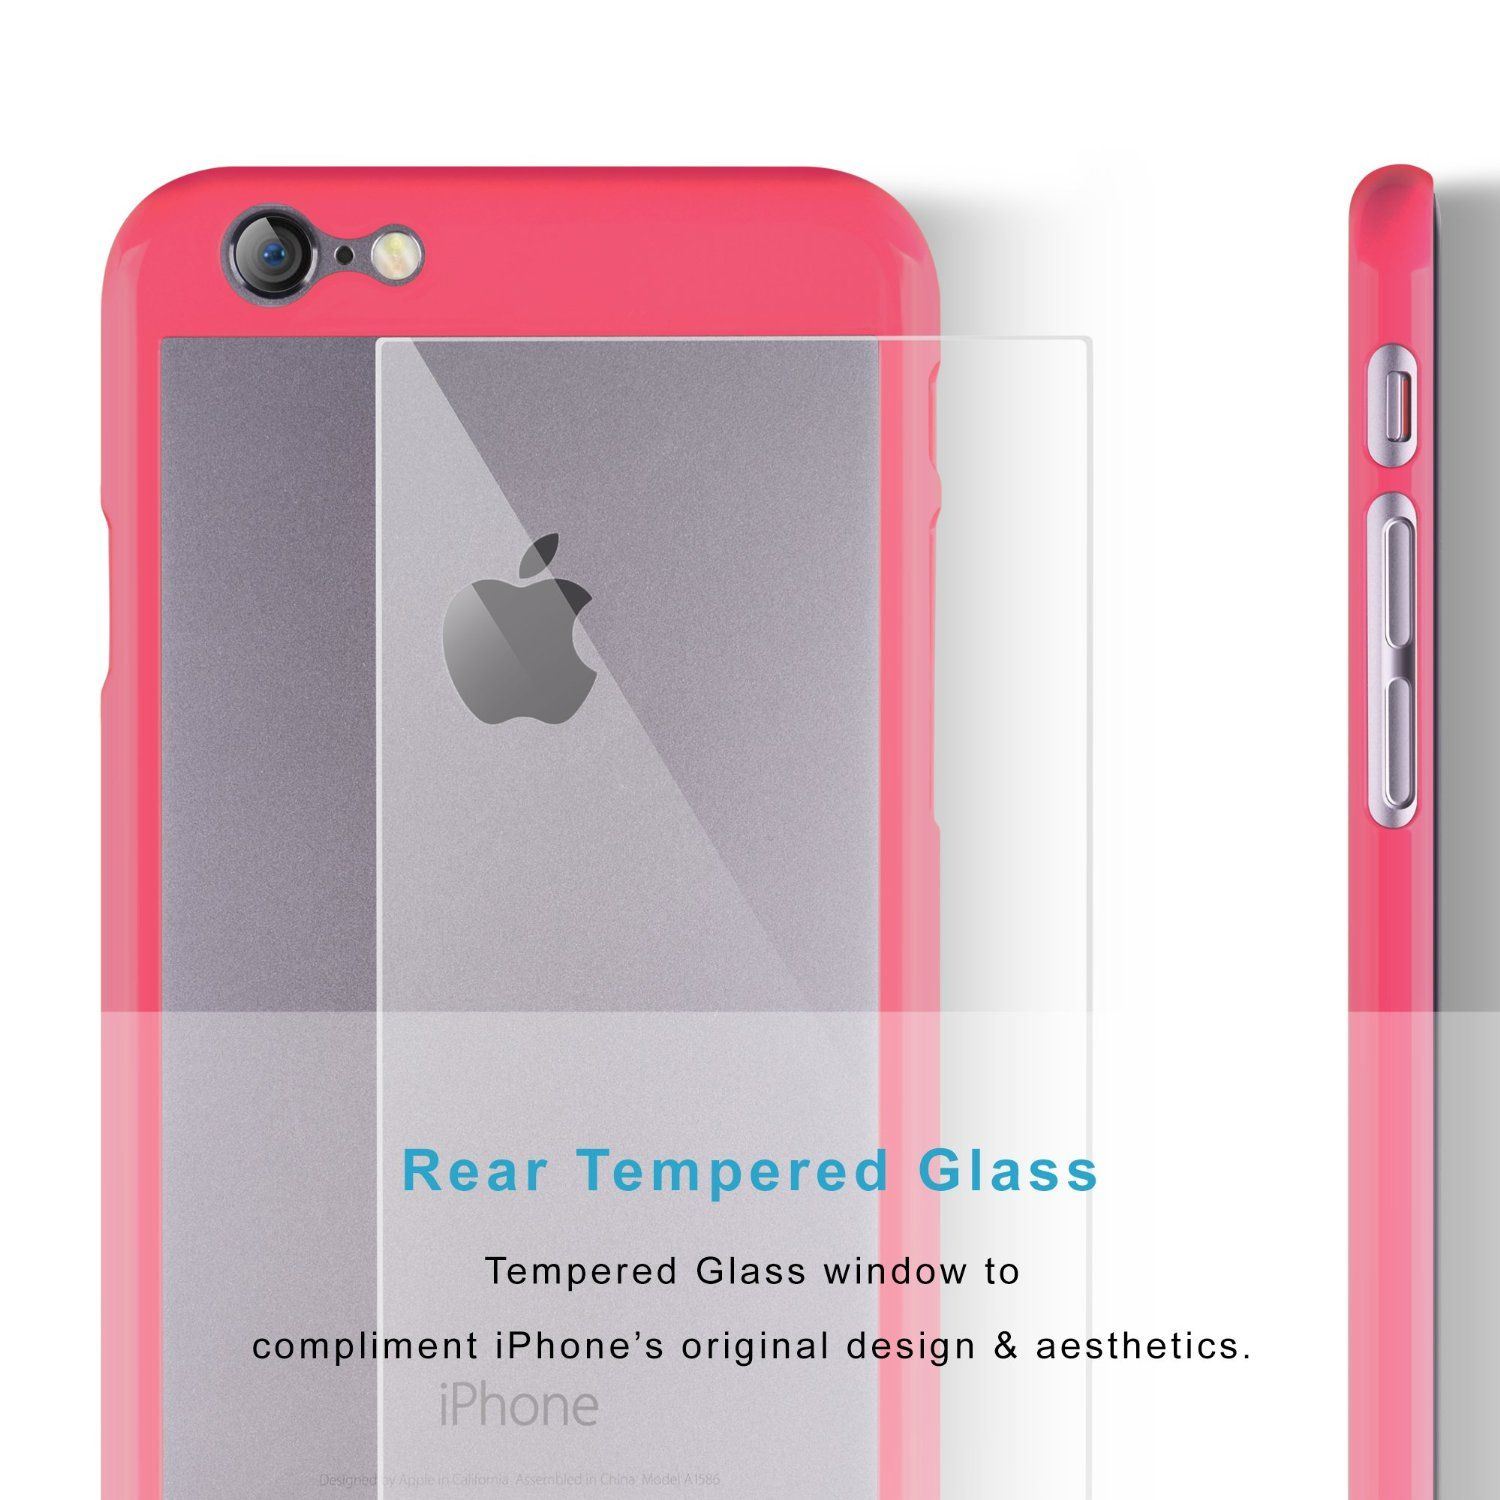 iPhone 6 Case | iCASEIT COMBi Glass Case - BABY BLUE | Slim case with Strengthened Glass back | Only 0.8mm in Thickness | [Non-Slip] [Exact-Fit] Premium Finish | Does NOT fit iPhone 6s - BABY BLUE